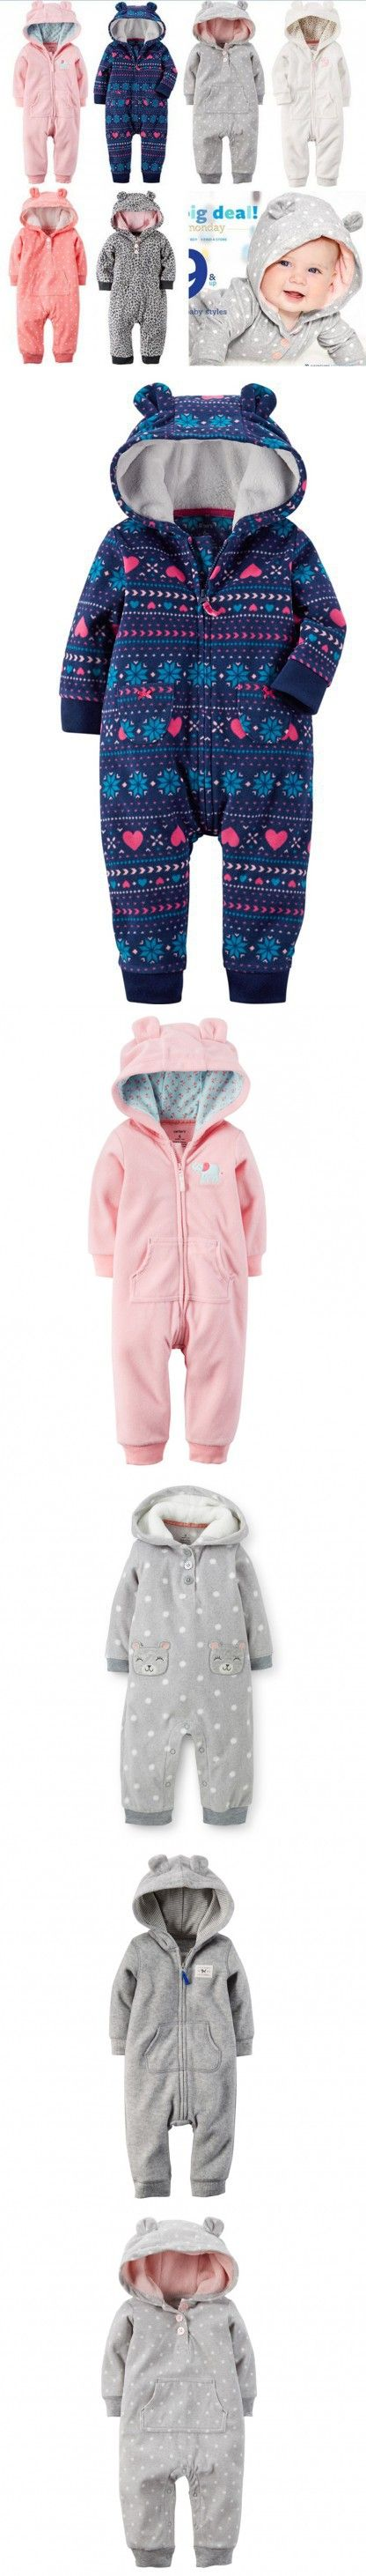 2015 New brands Baby Girl Boy Winter Clothes Thickening Baby Rompers Polar Fleece Newborn Winter Coverall Hooded Baby Clothing